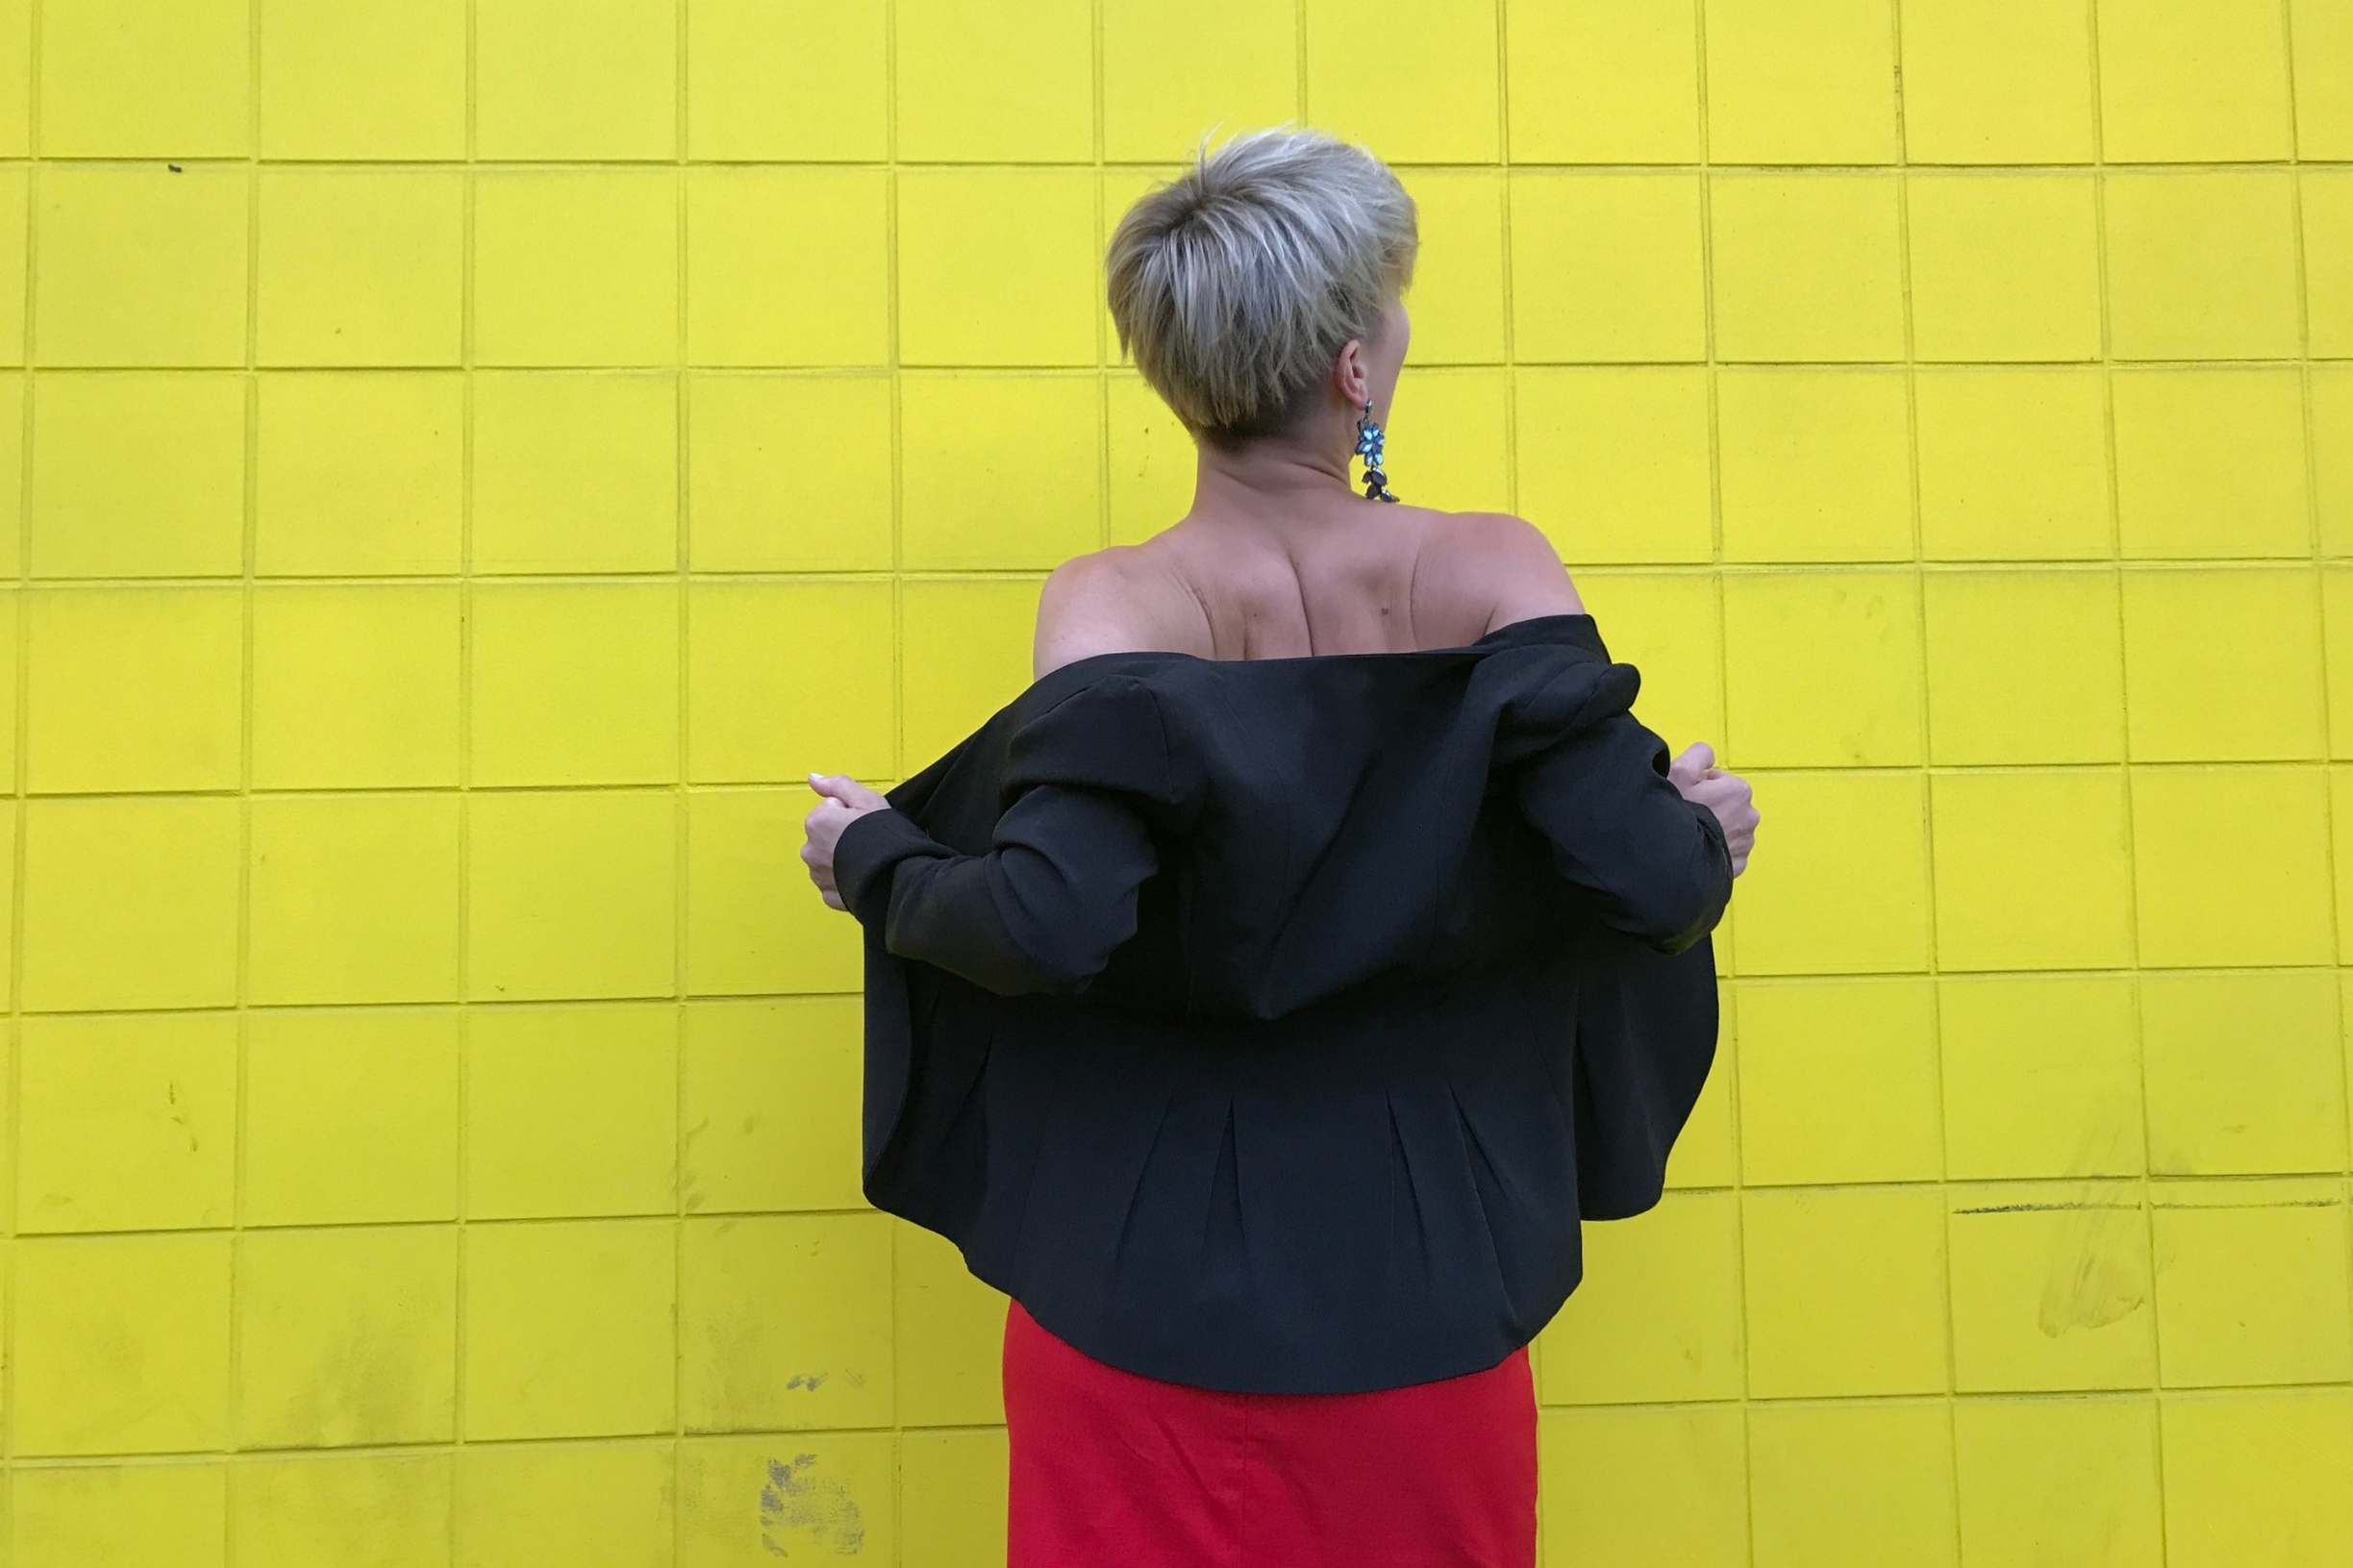 Credits: Photo - Anonymous, Styling - Sarah G. Schmidt, Location - 300 Block of 14 Street NW